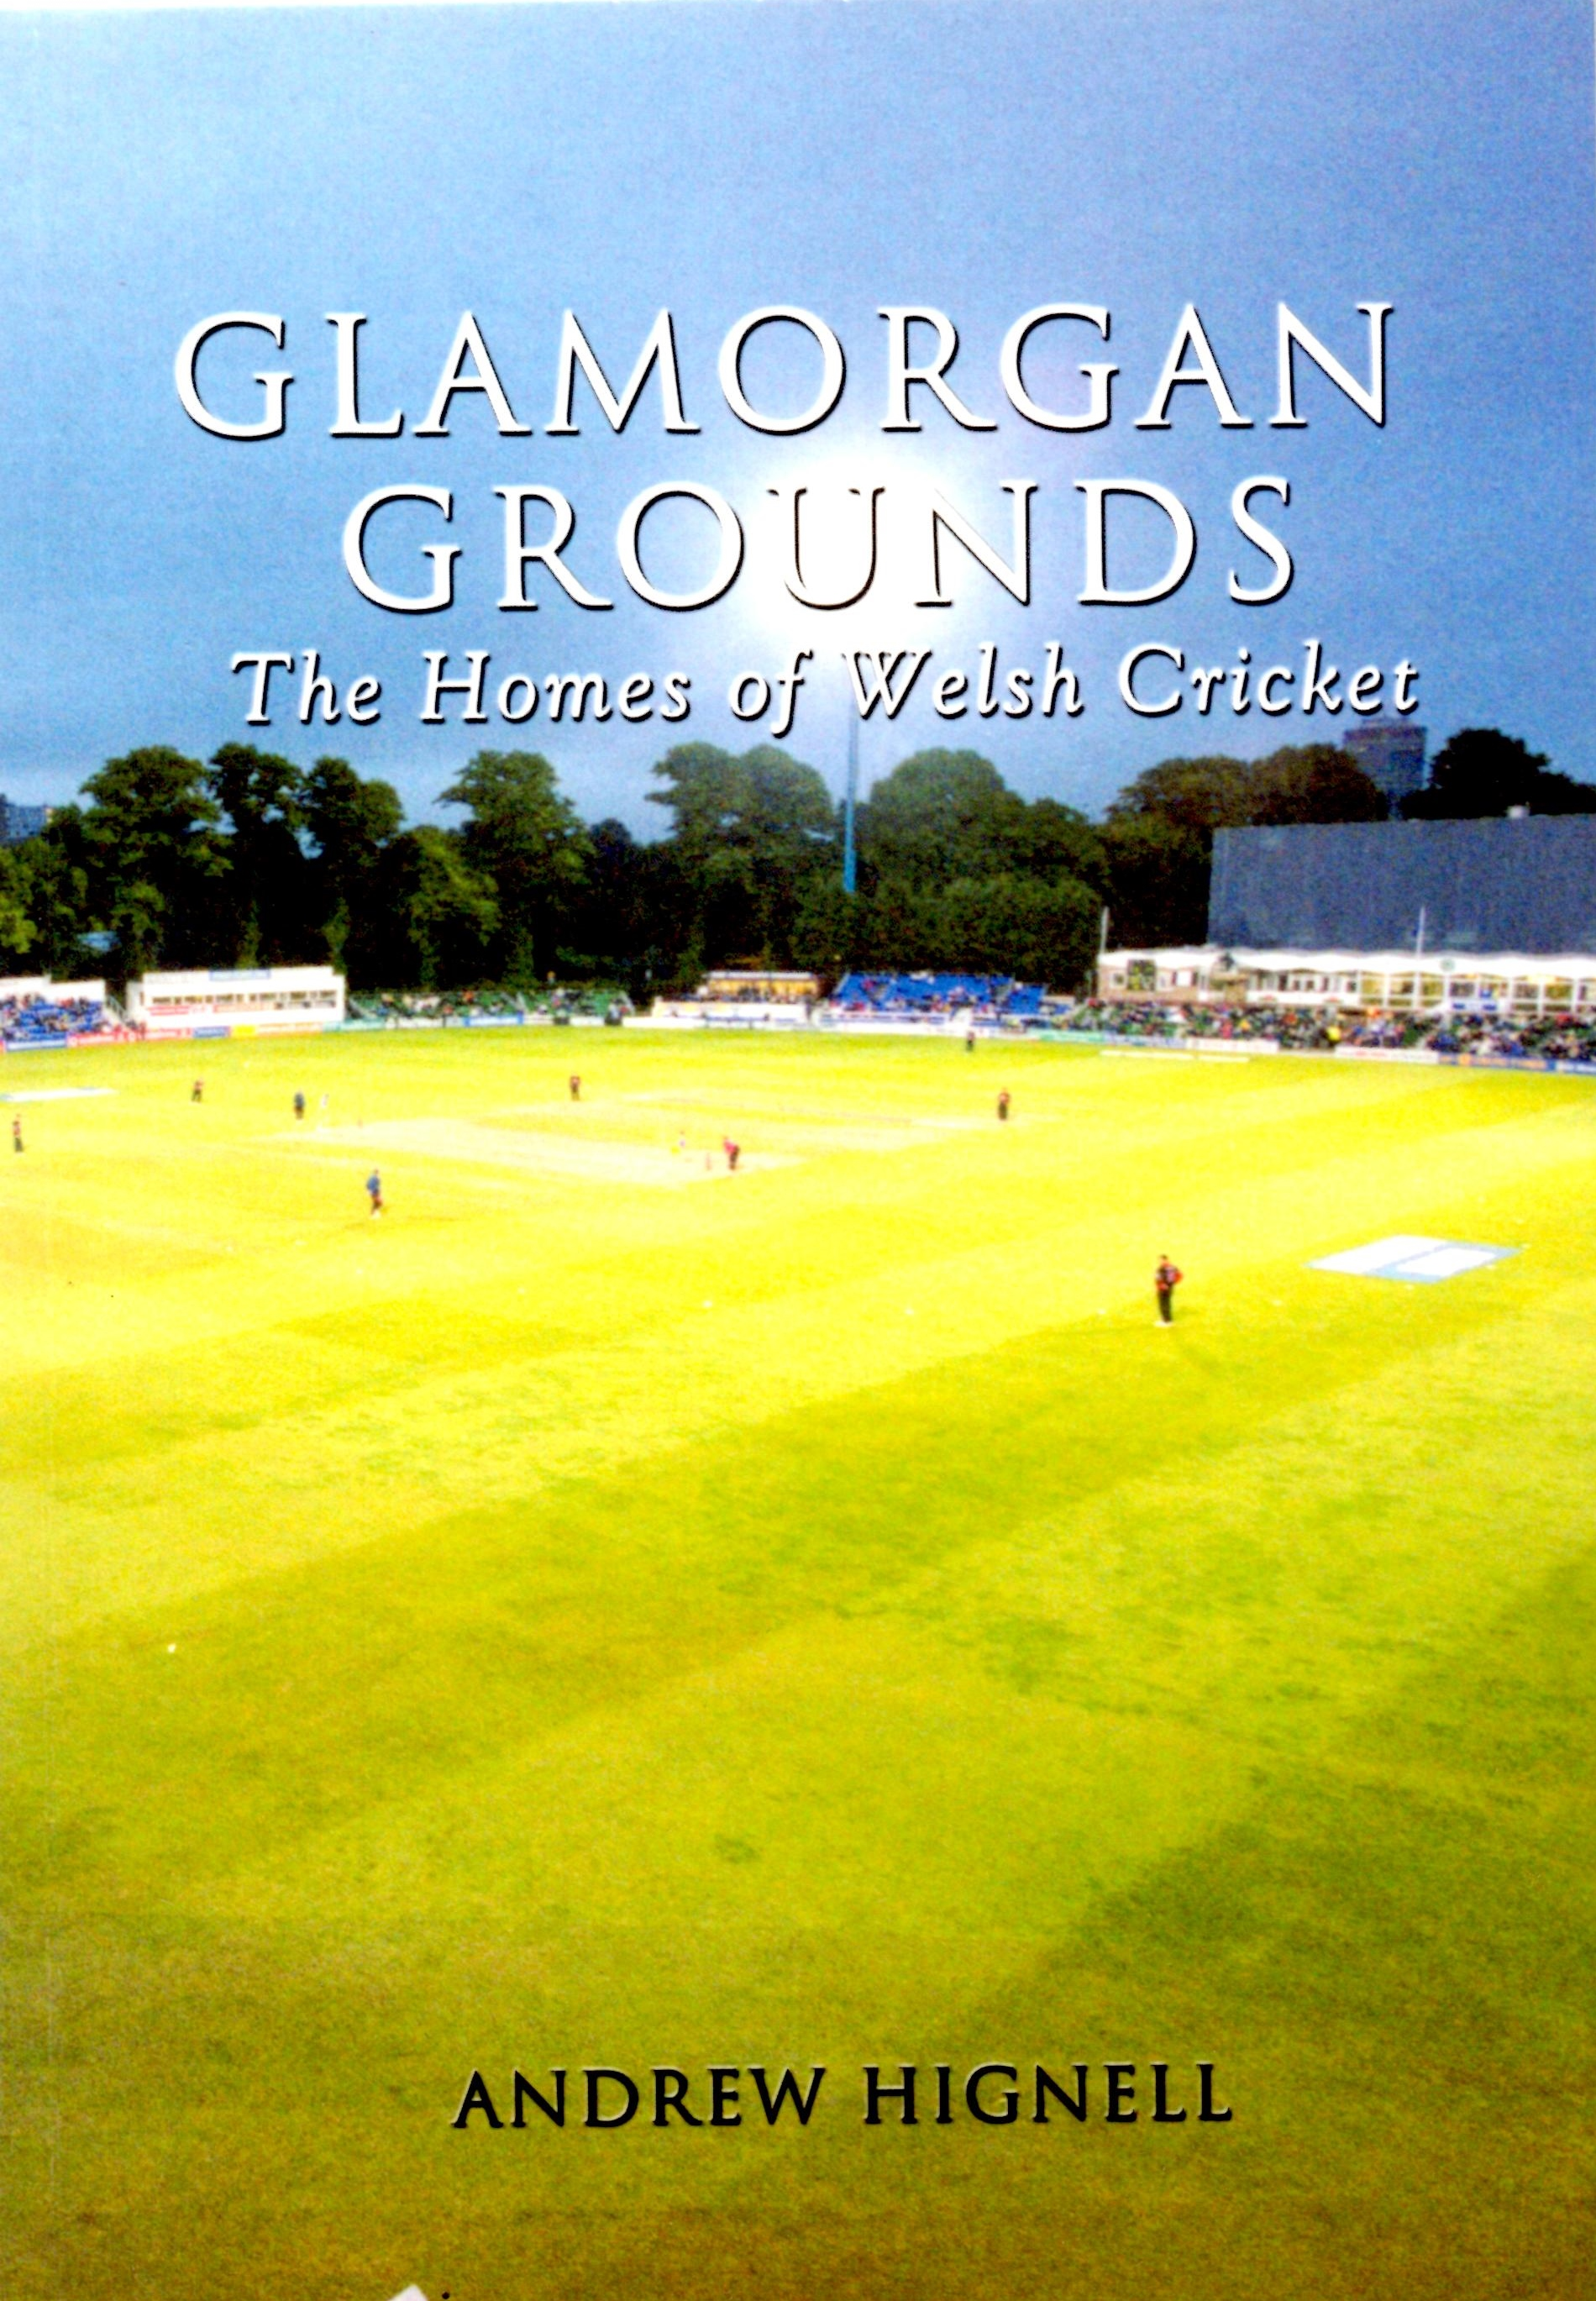 Glamorgan Grounds: The Homes of Welsh Cricket